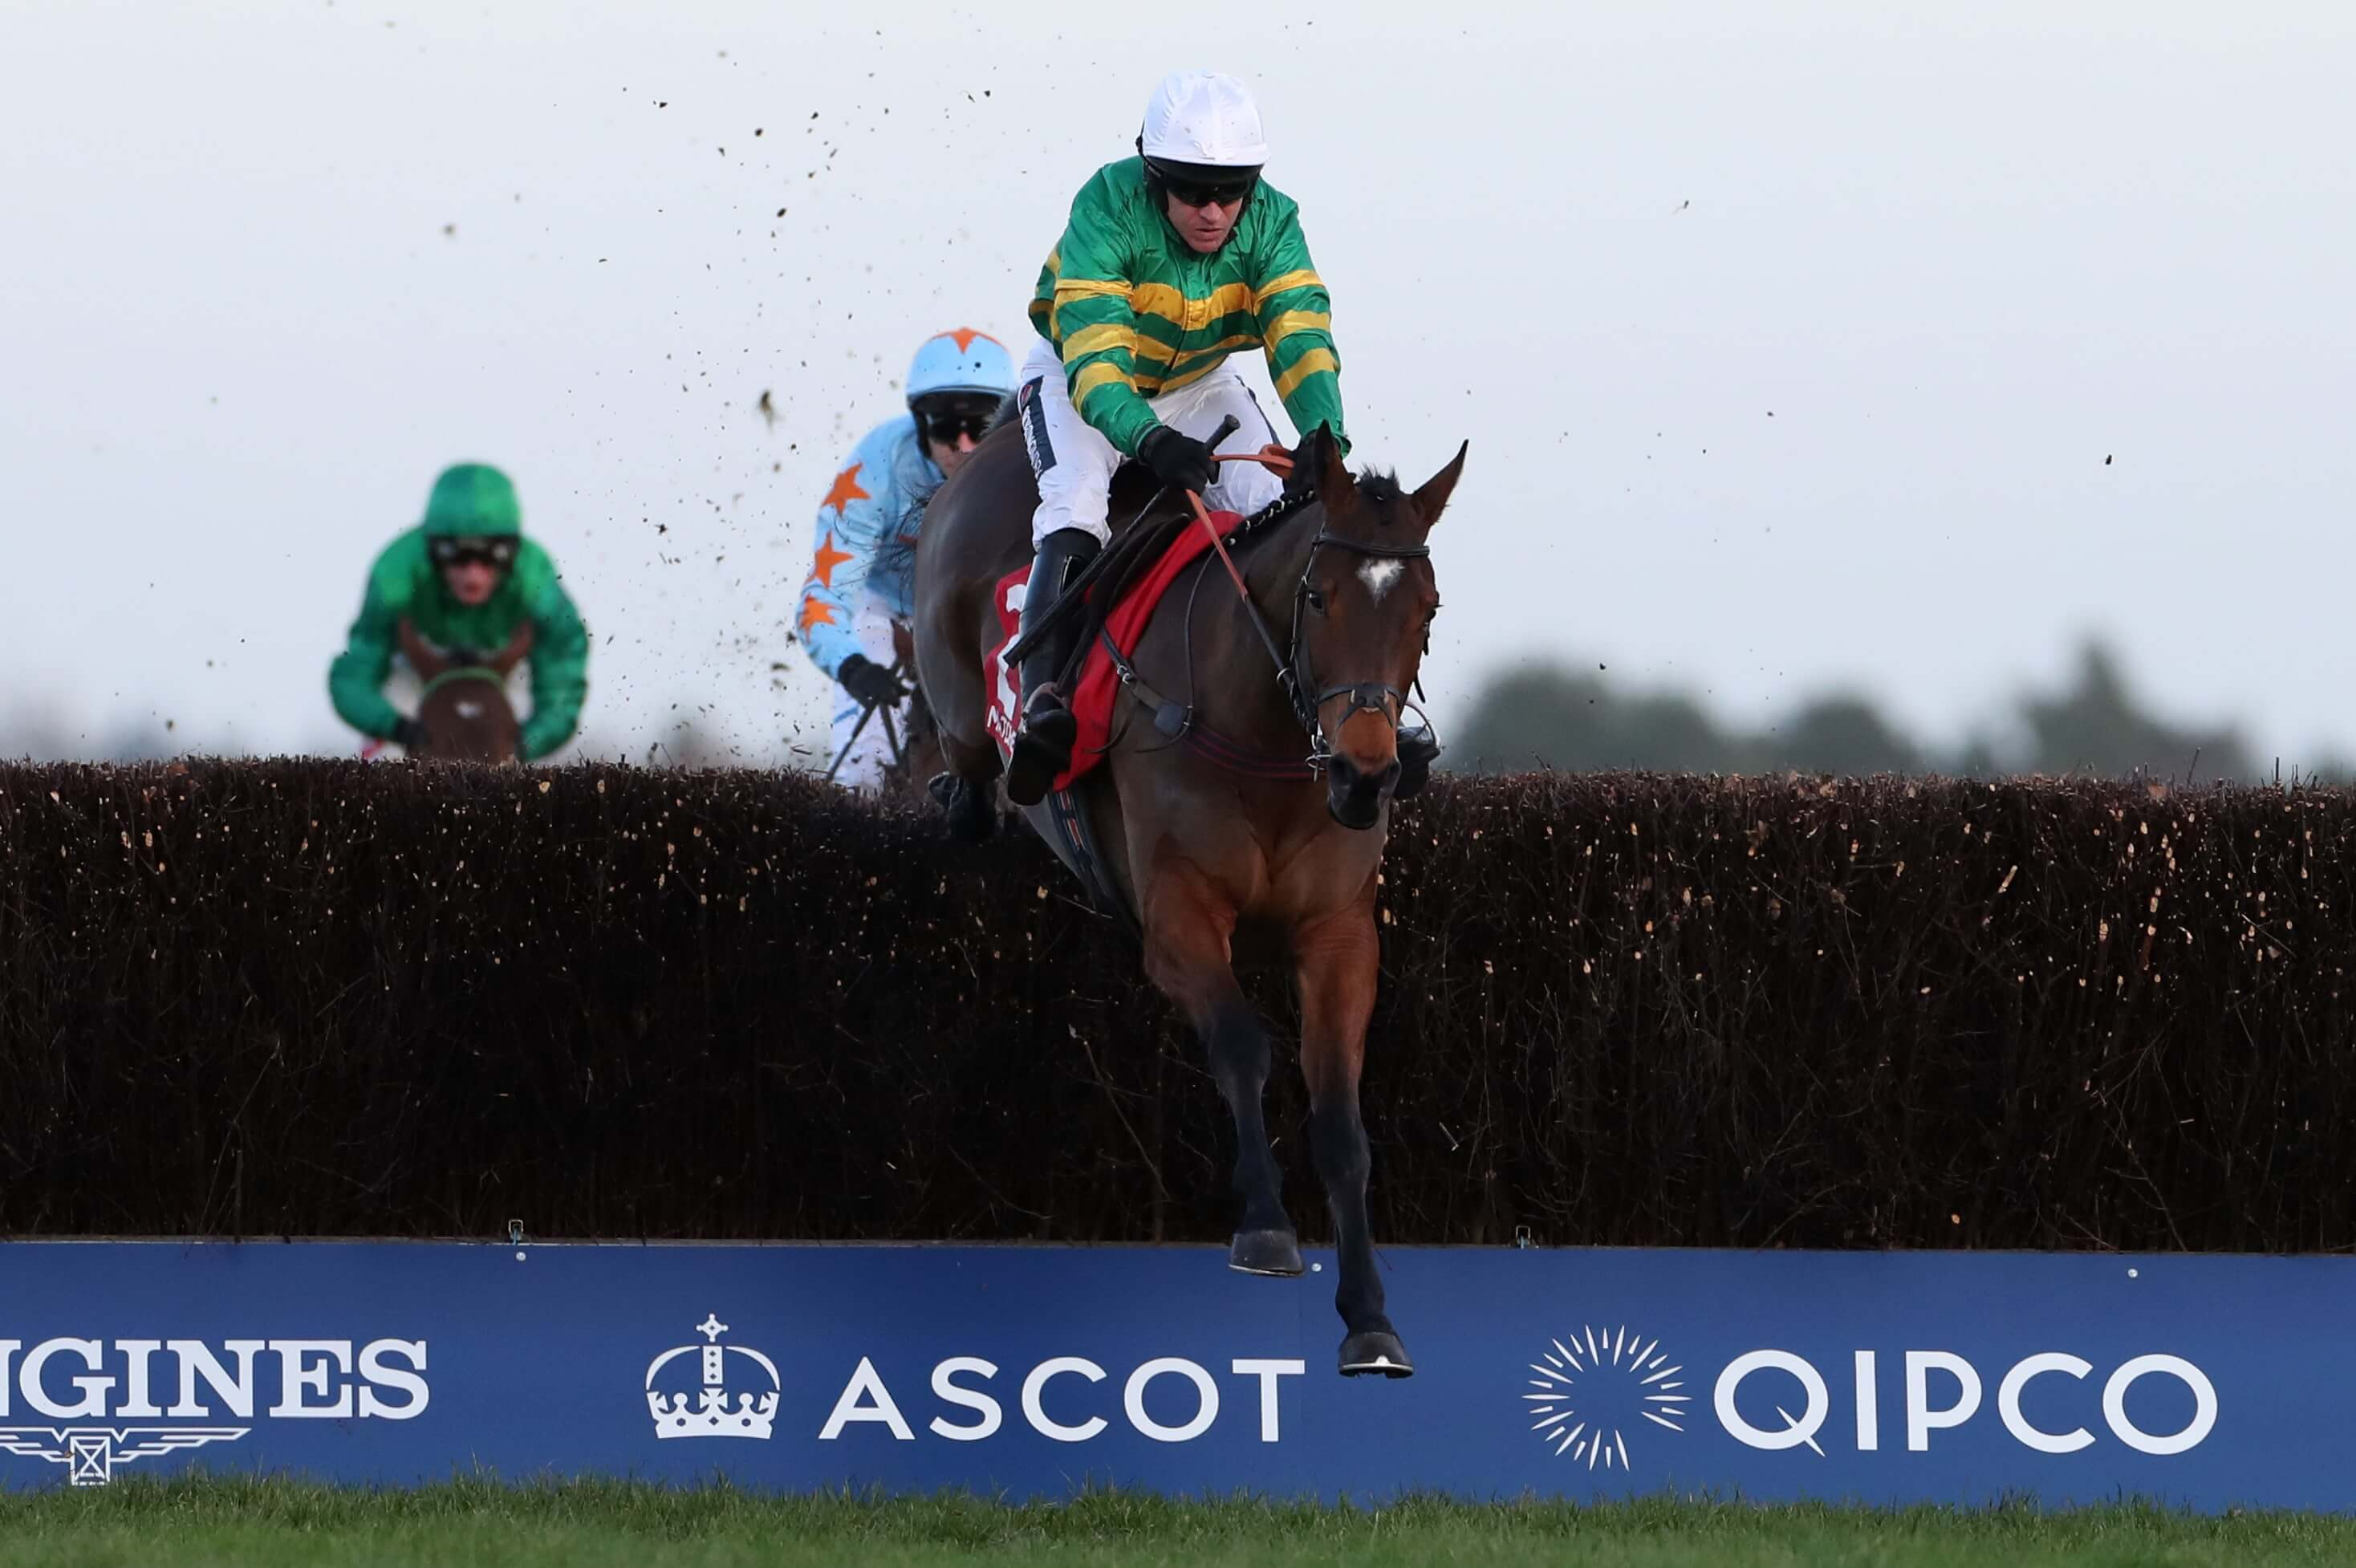 Horse Racing: Ascot, Haydock and Wincanton – Preview & Tips – Saturday